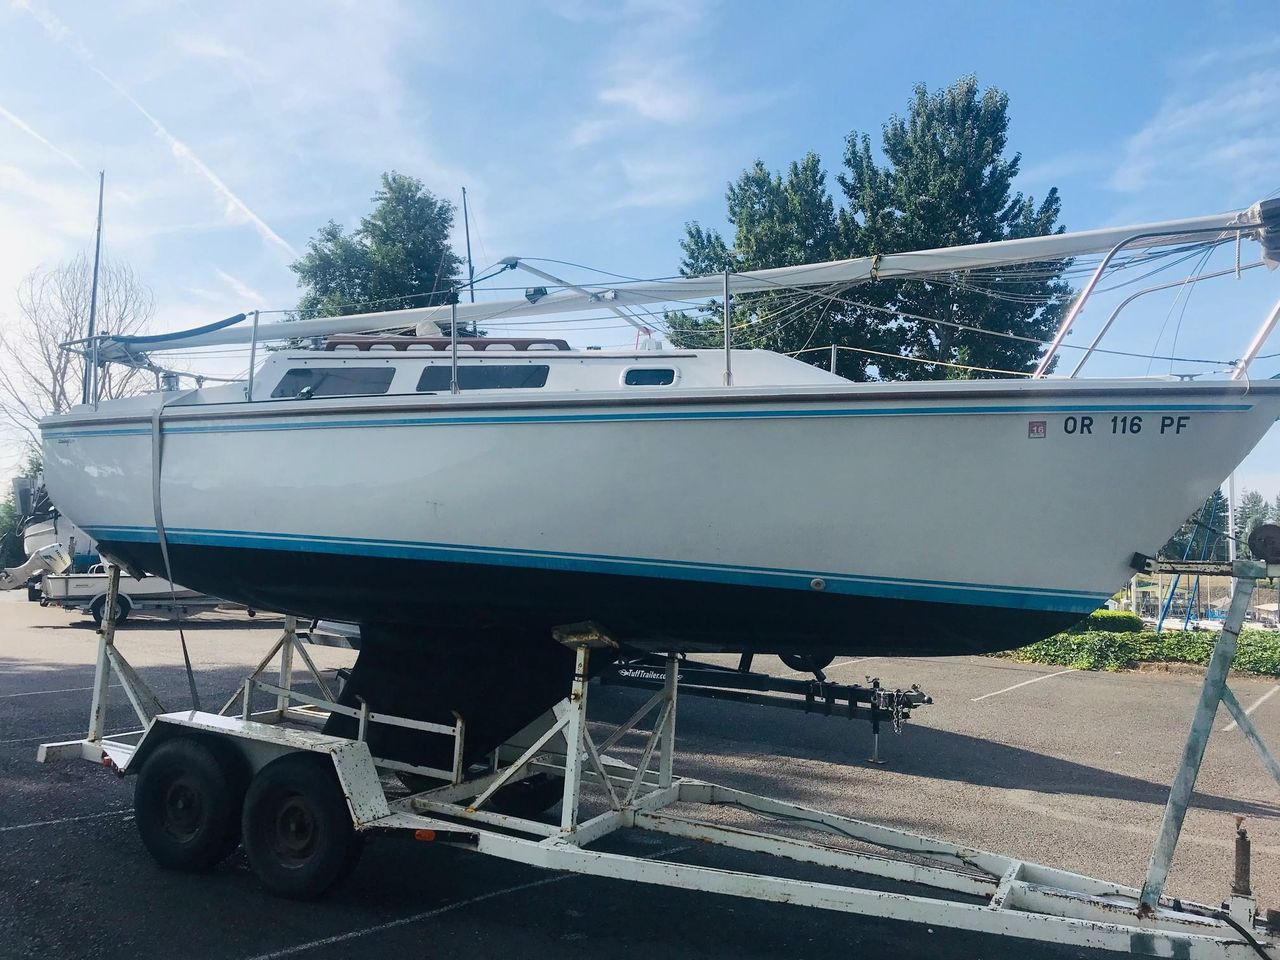 1987 Used Catalina 25 Cruiser Sailboat For Sale - $7,800